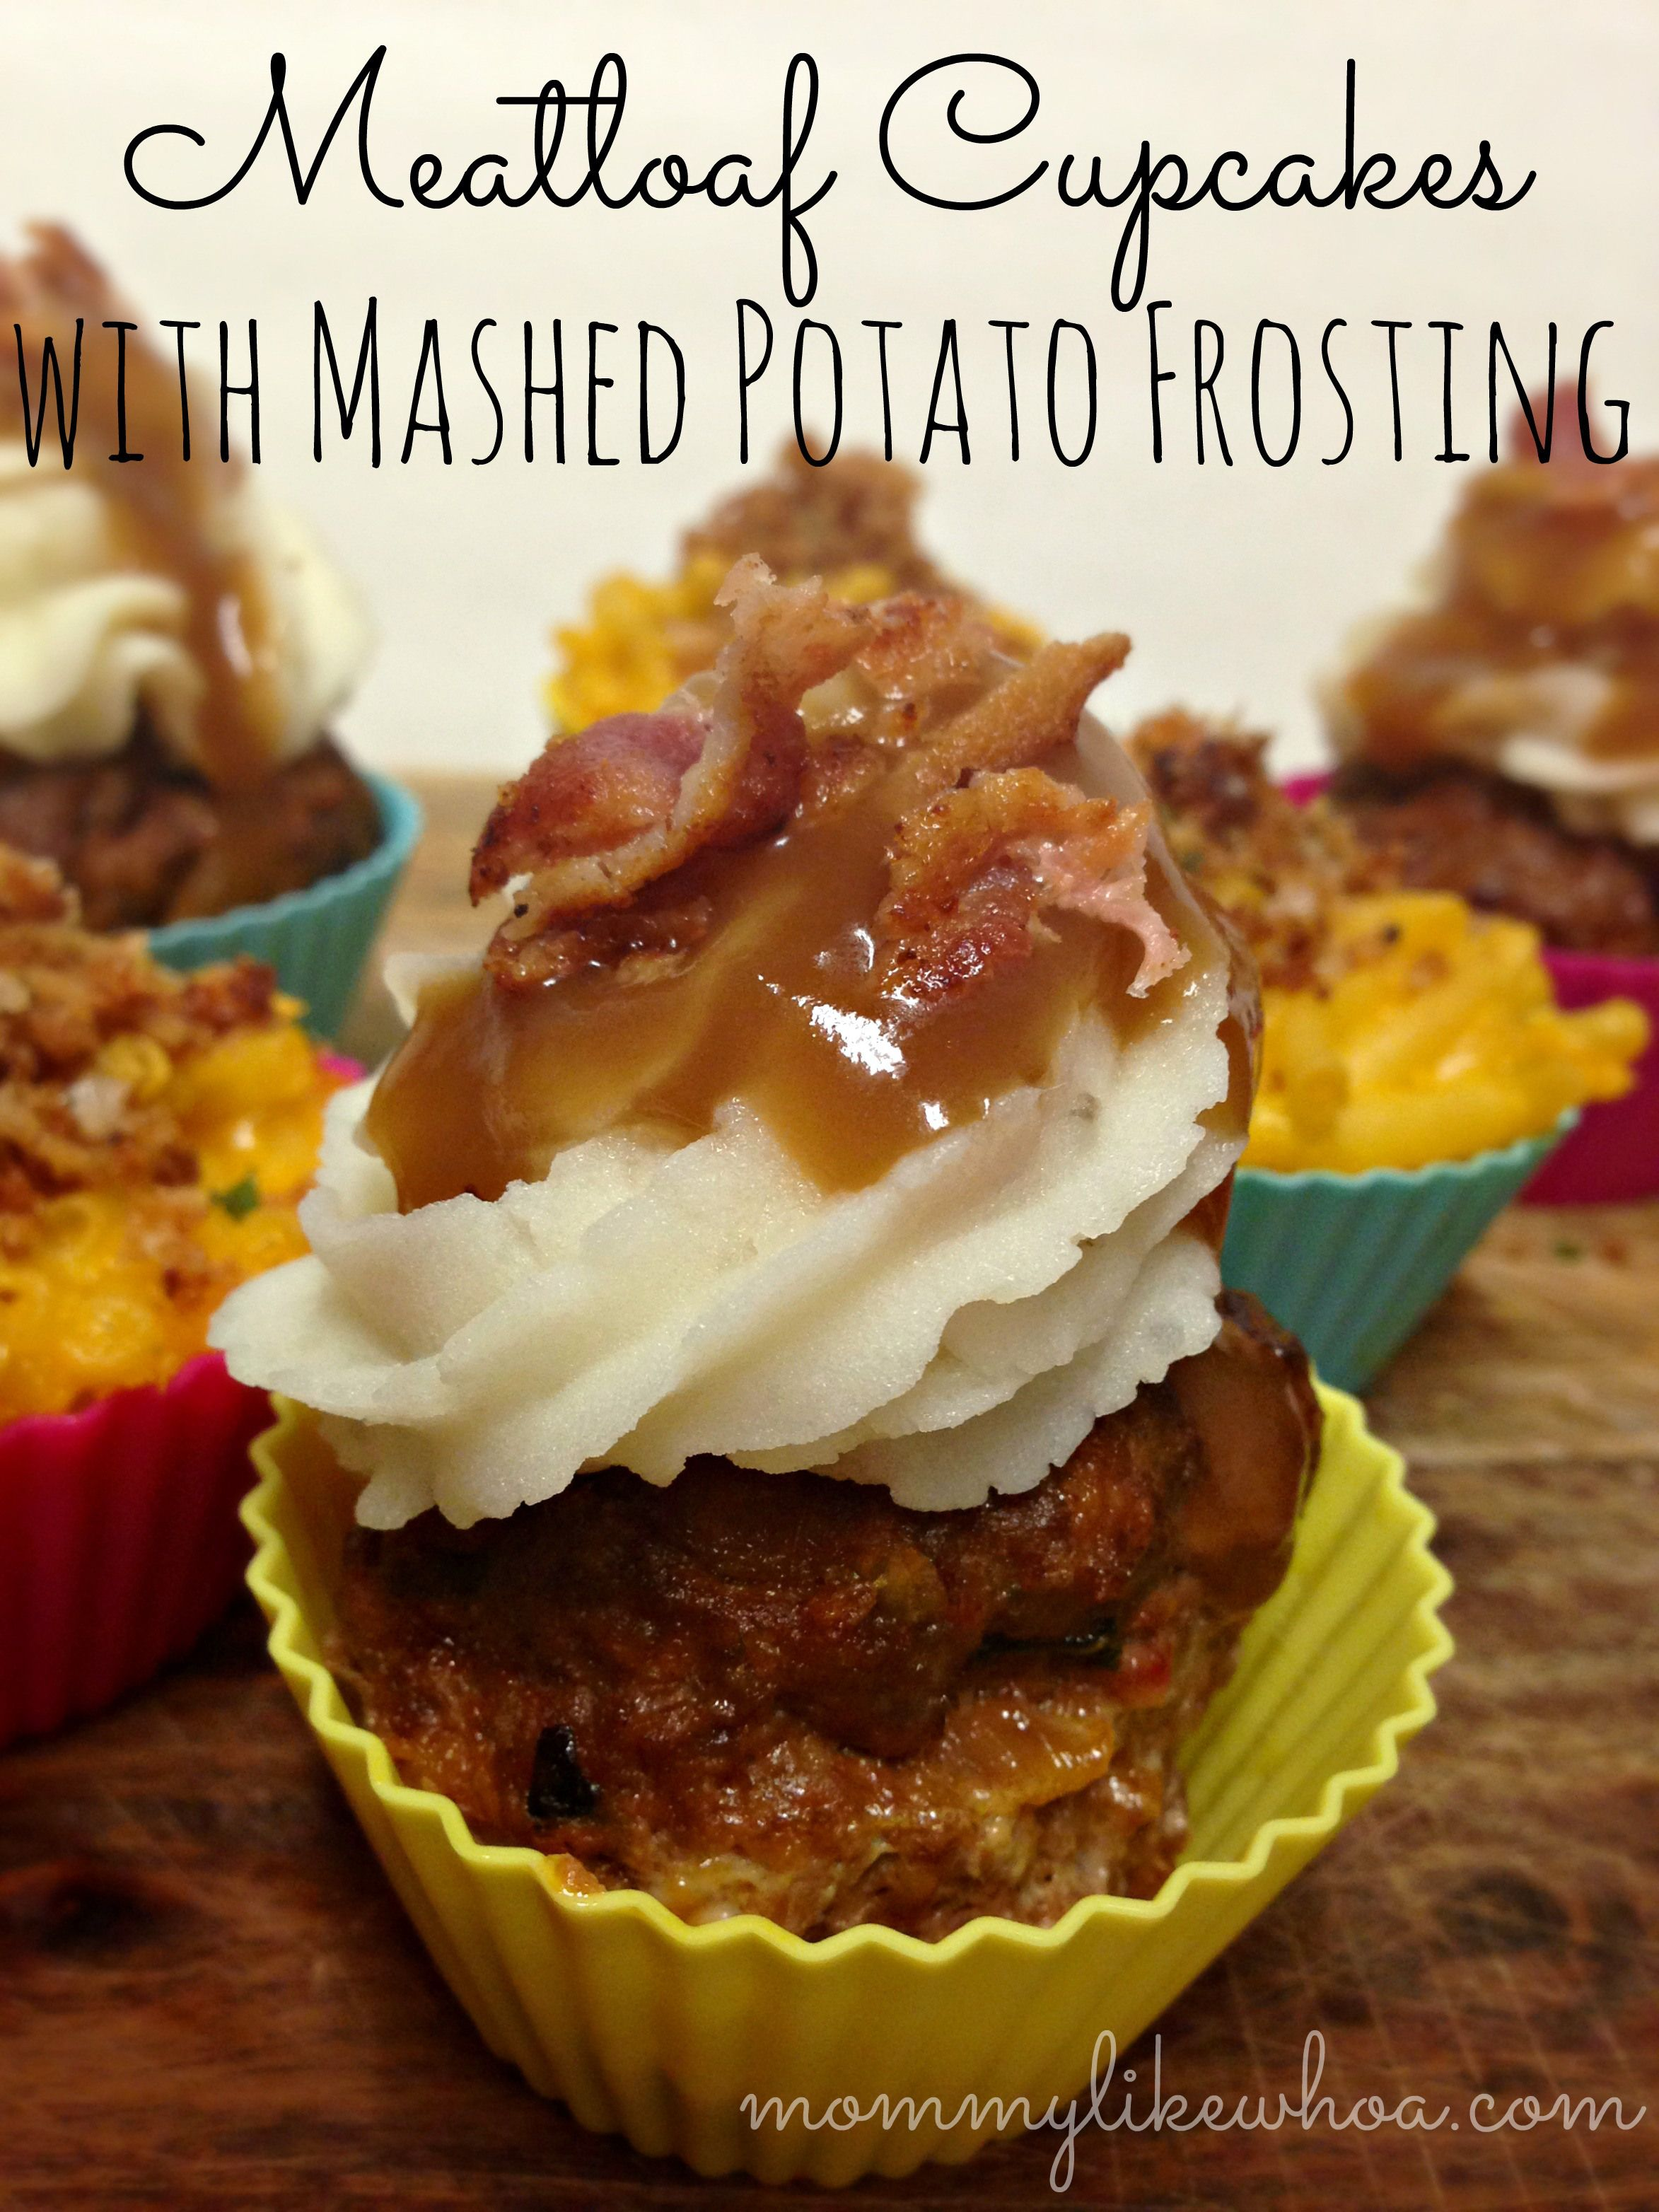 Meatloaf Cupcakes with Mashed Potato Frosting - mommylikewhoa.com